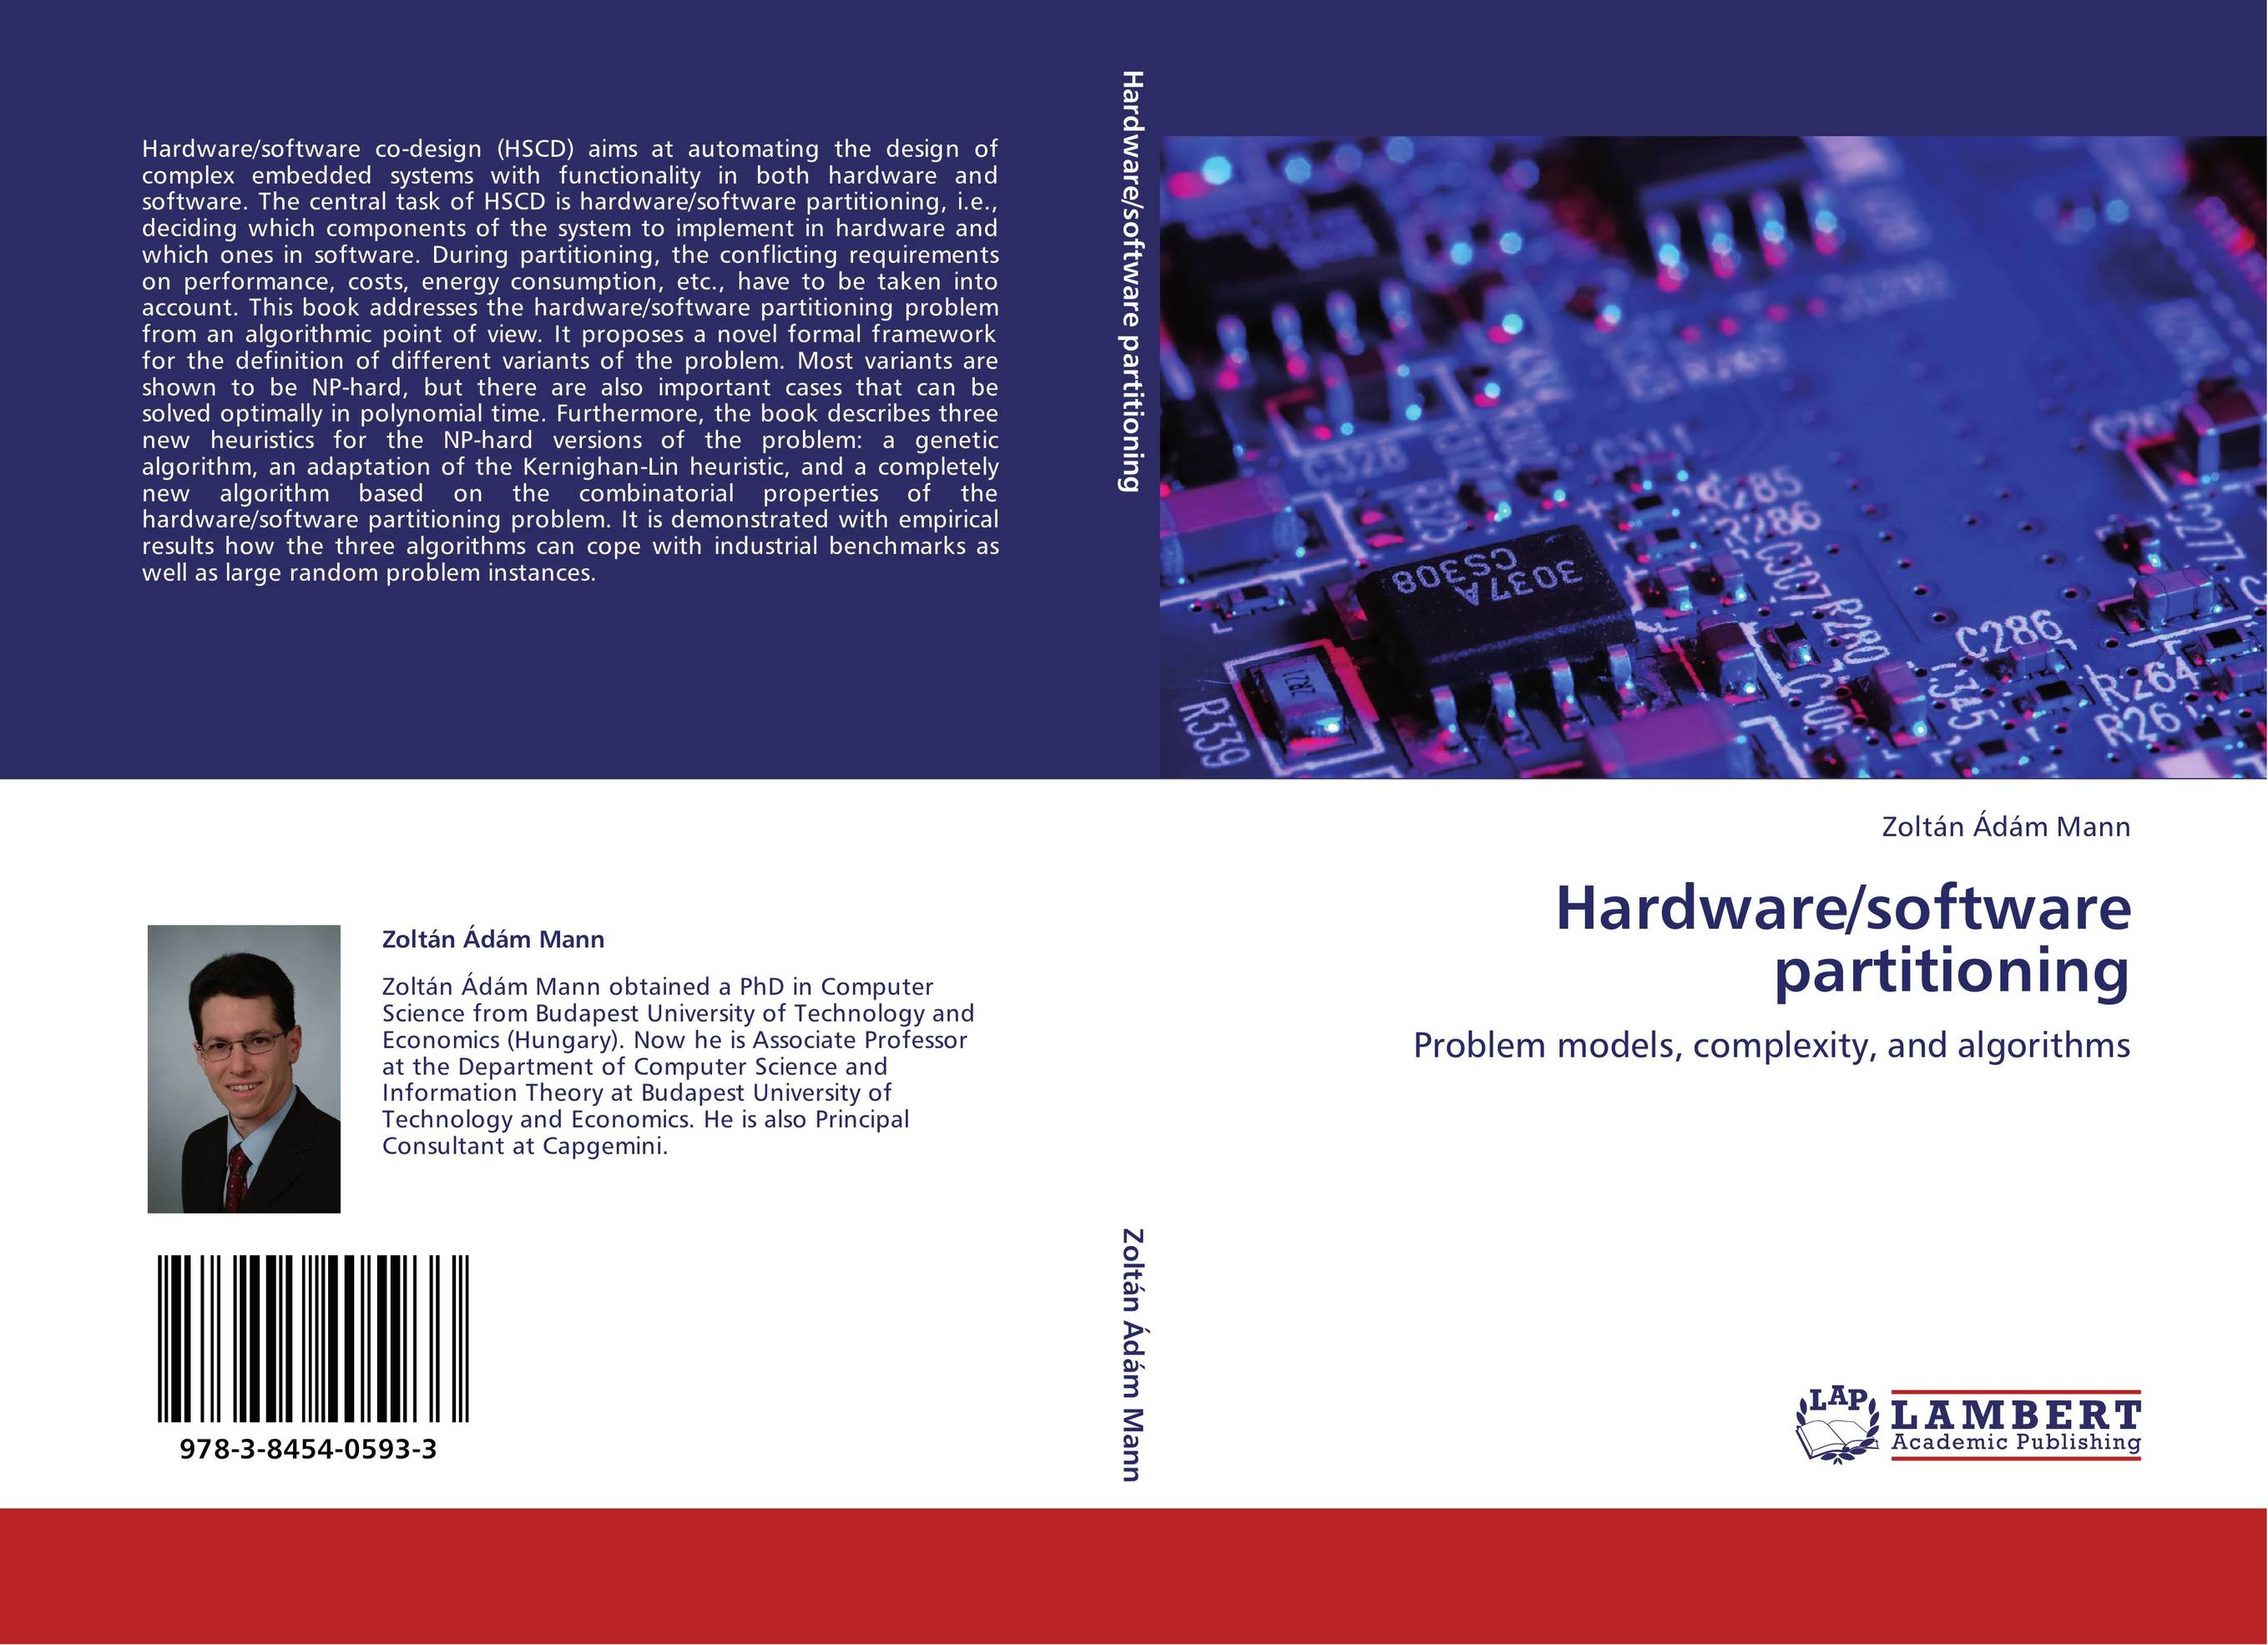 important of hardware software and netware The capabilities of computer hardware and computer software, and highlights the major issues in the management of the firm's hardware and software assets 61 c omputer h ardware and i nformation t echnology.